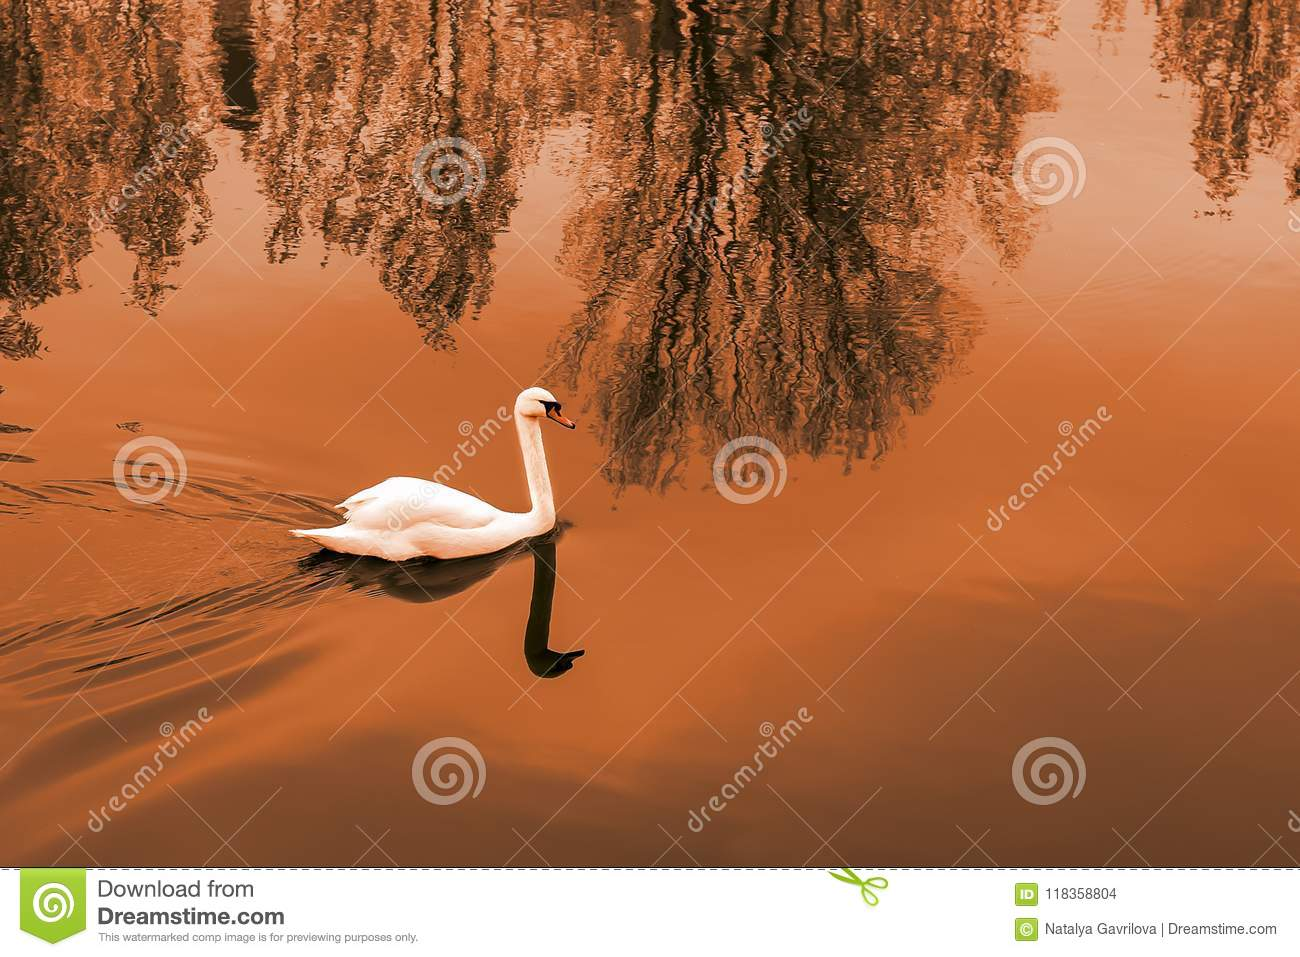 White Swan on the pond at sunset